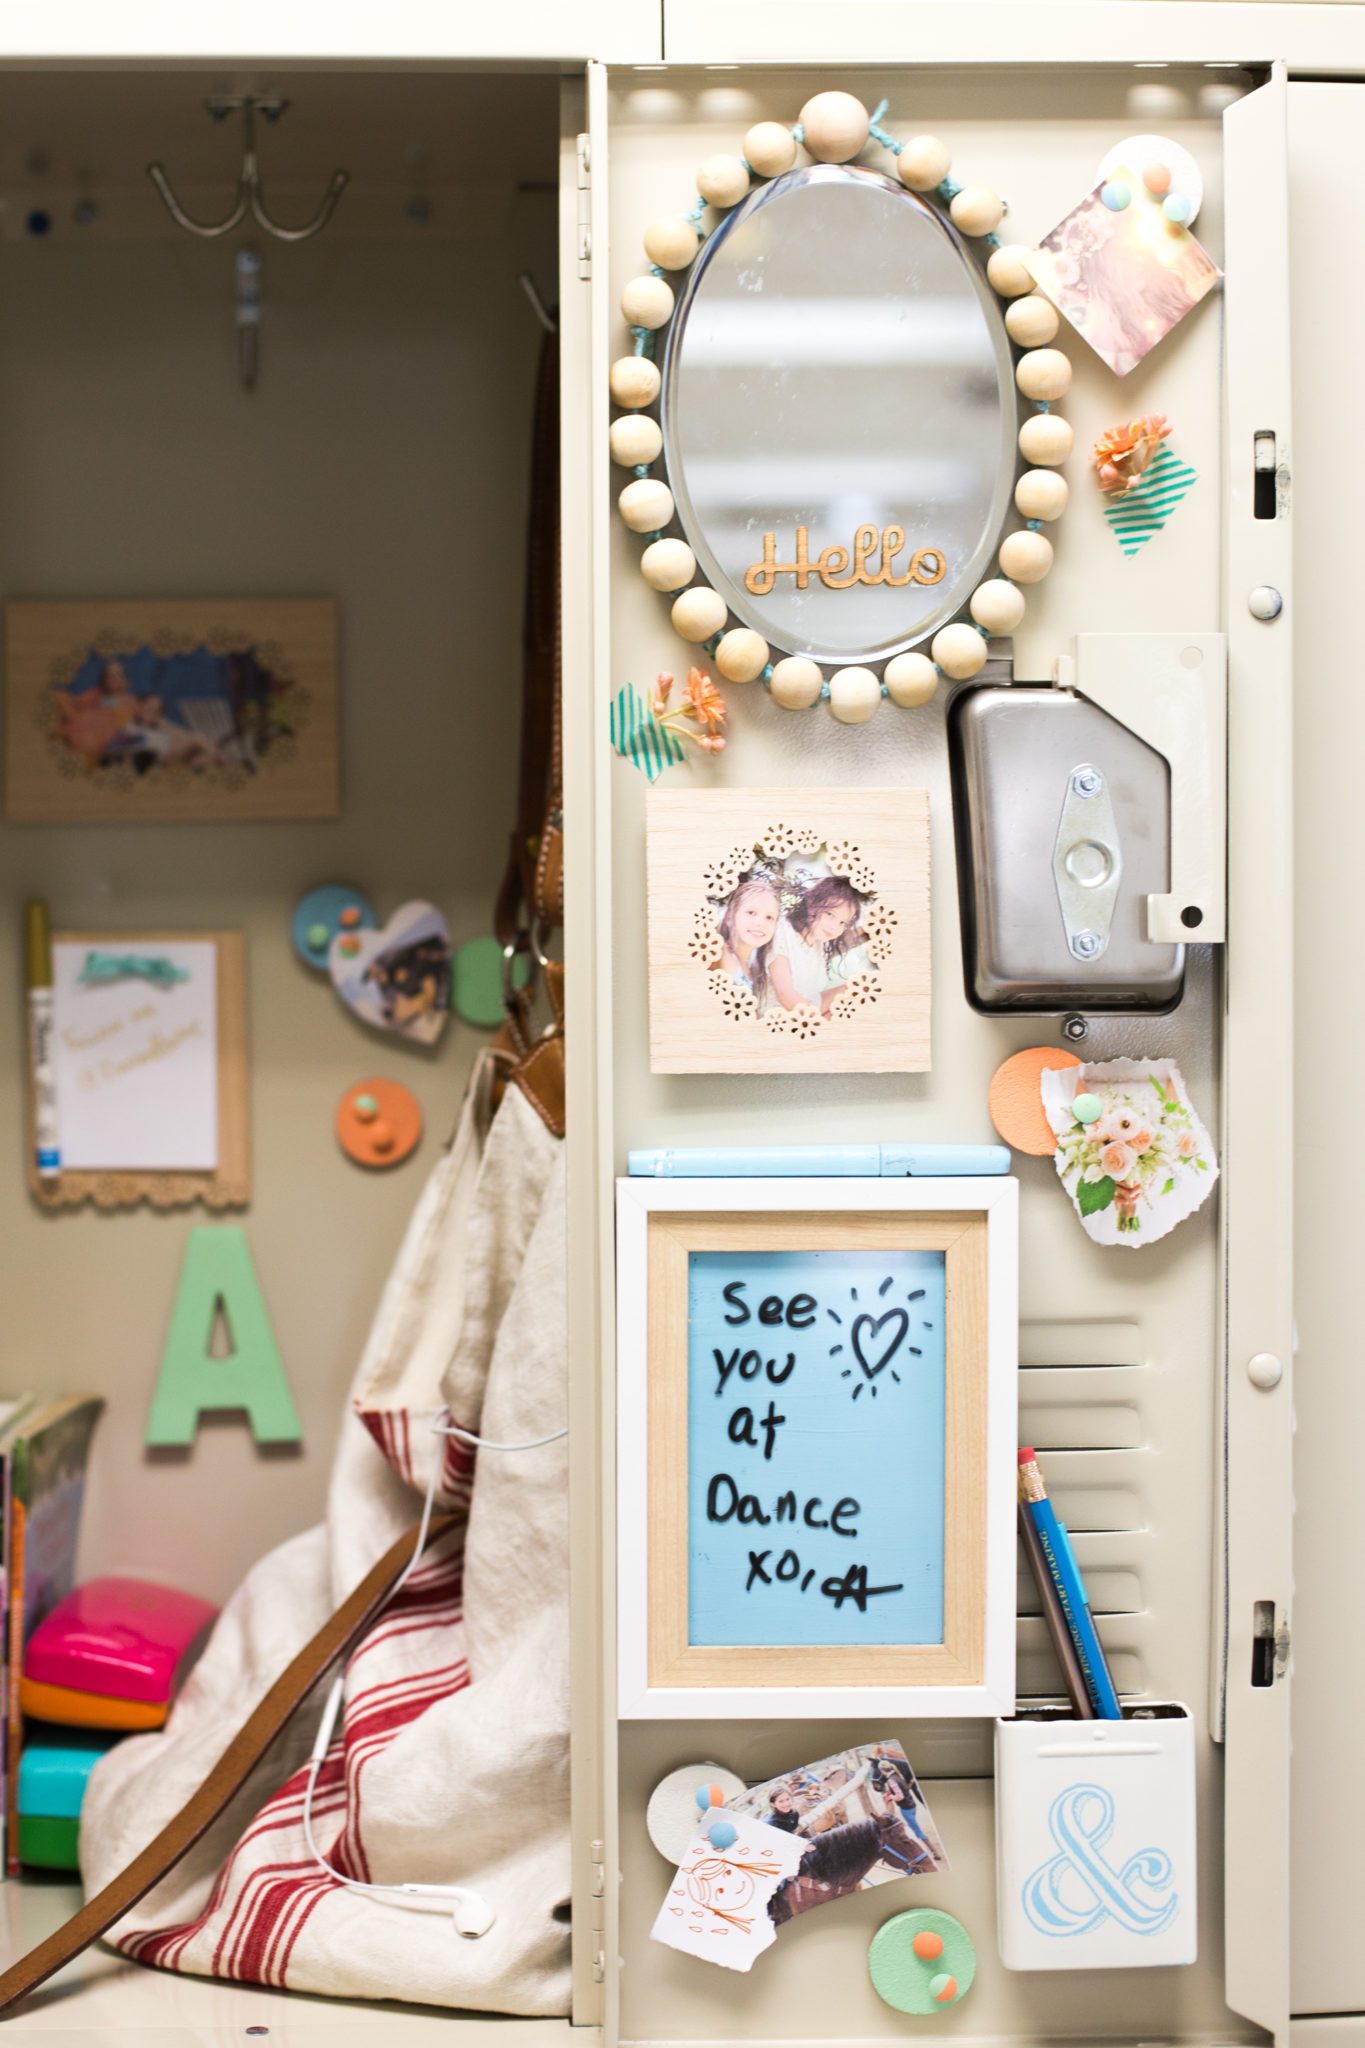 DIY Locker Decorations: Mirror +Bulletin Board - Flax & Twine